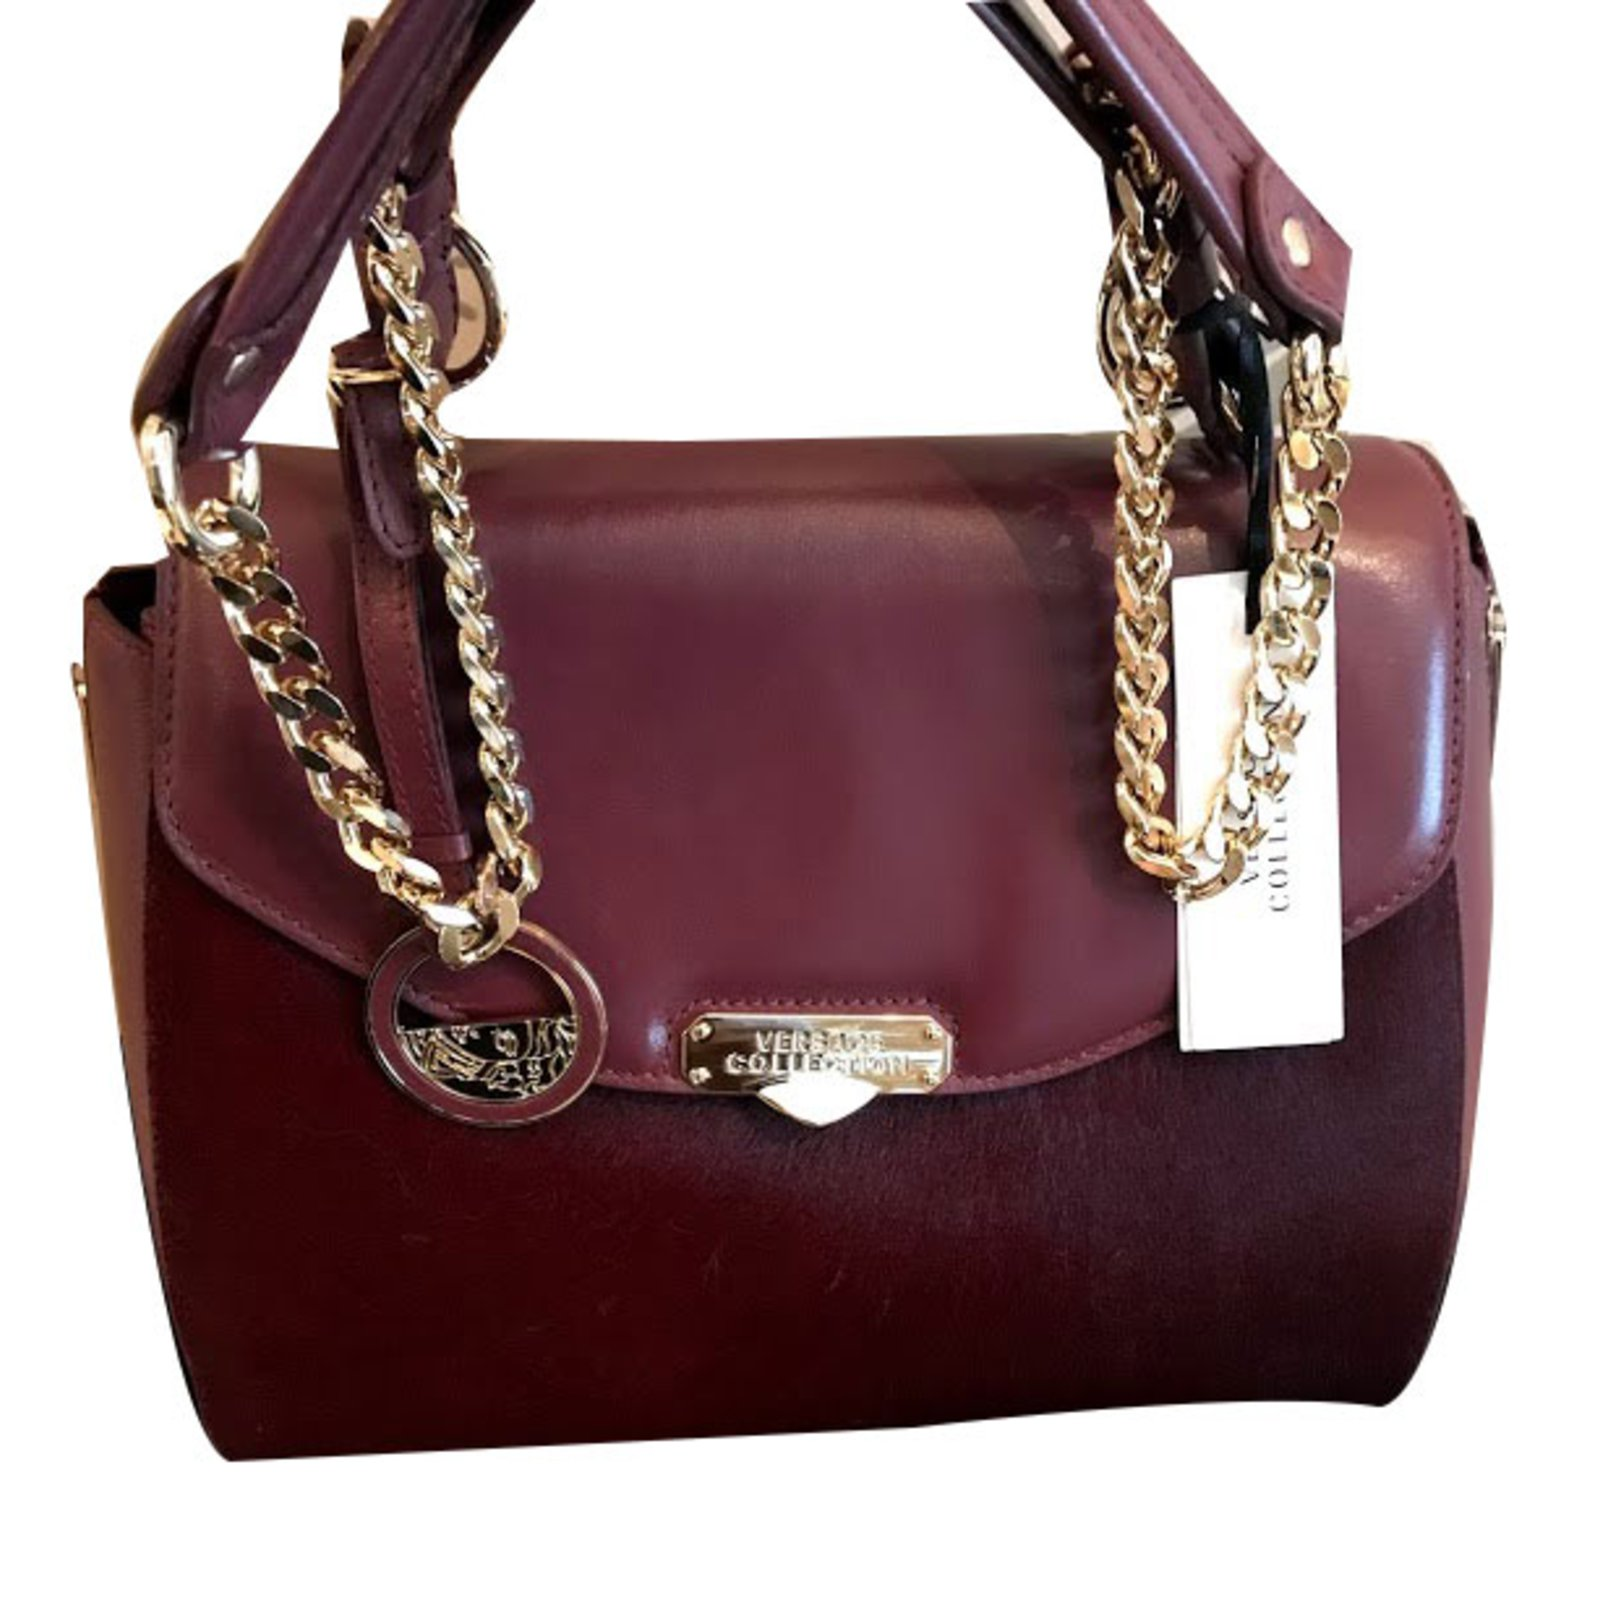 83afc8f7d050 Versace Versace Collection Large Top Handle Calf Hair   Leather Bag - New!  Handbags Leather